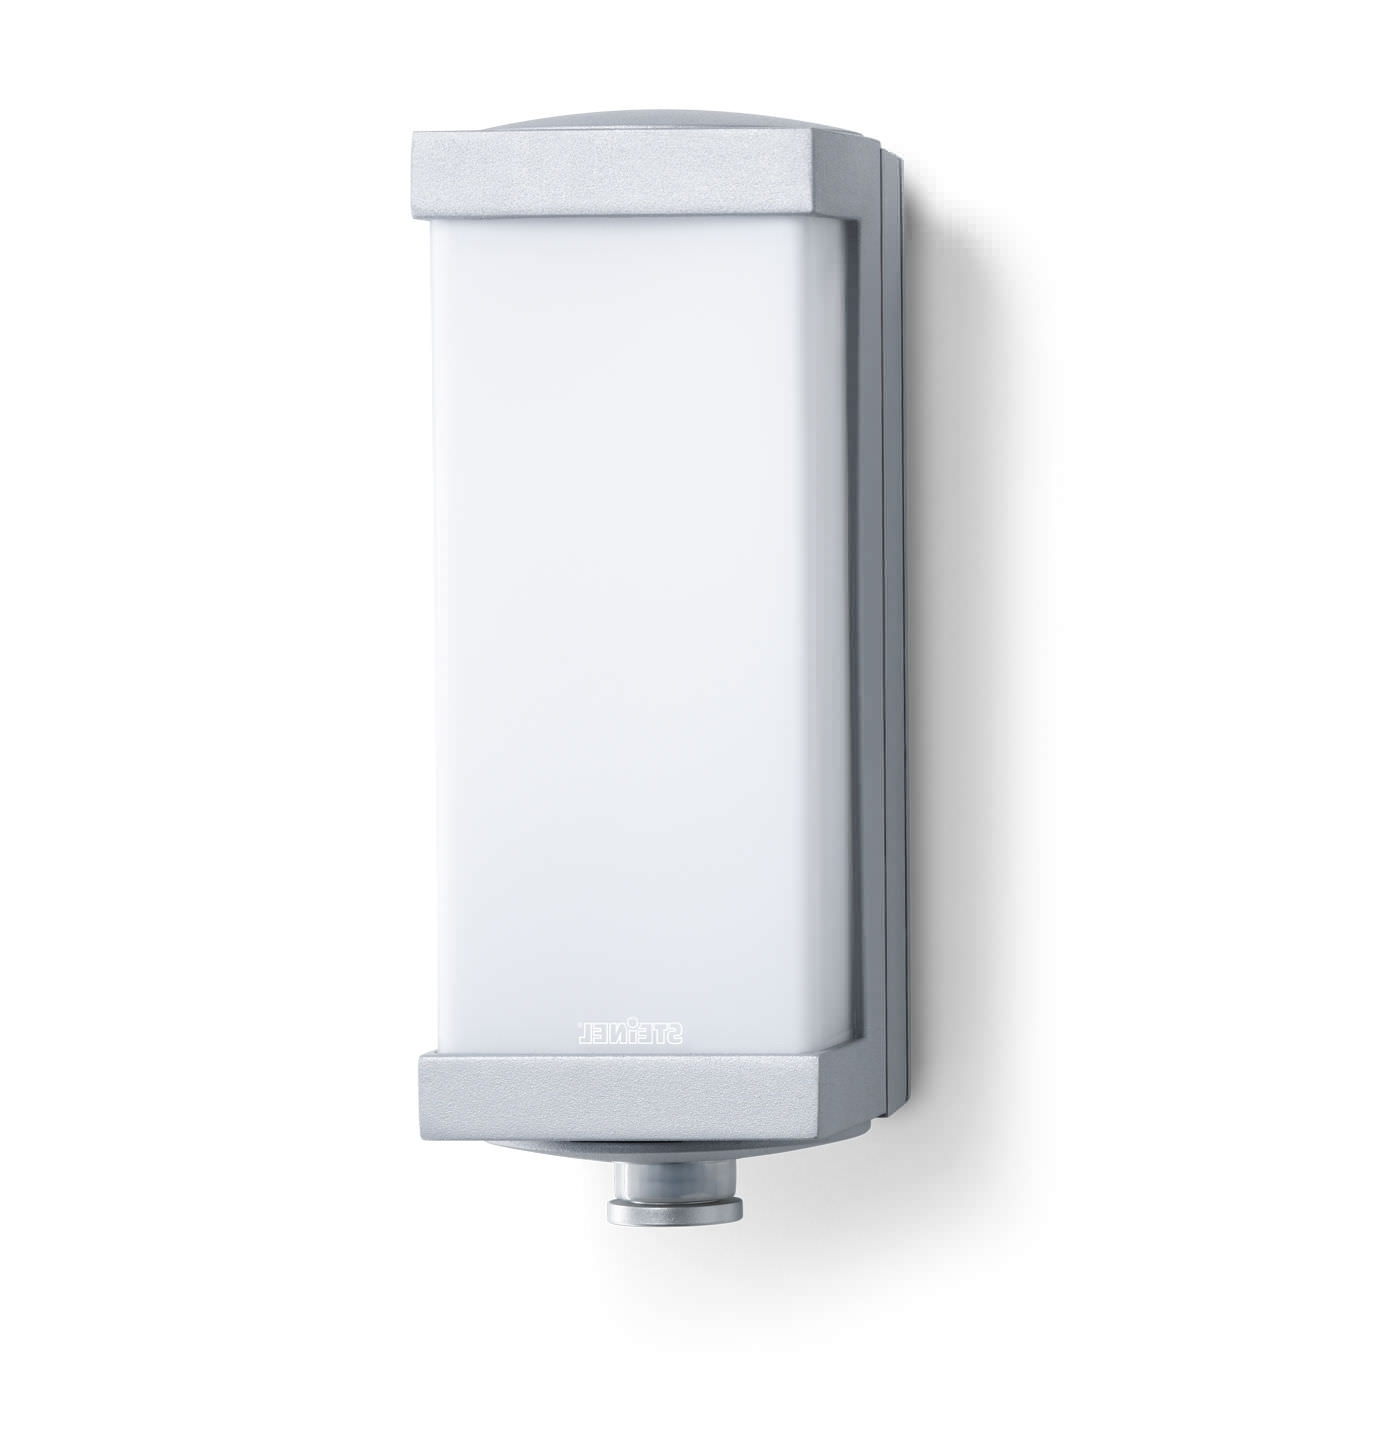 2019 Outdoor Wall Lights With Motion Sensors • Outdoor Lighting With Regard To Outdoor Wall Lighting With Motion Activated (View 18 of 20)